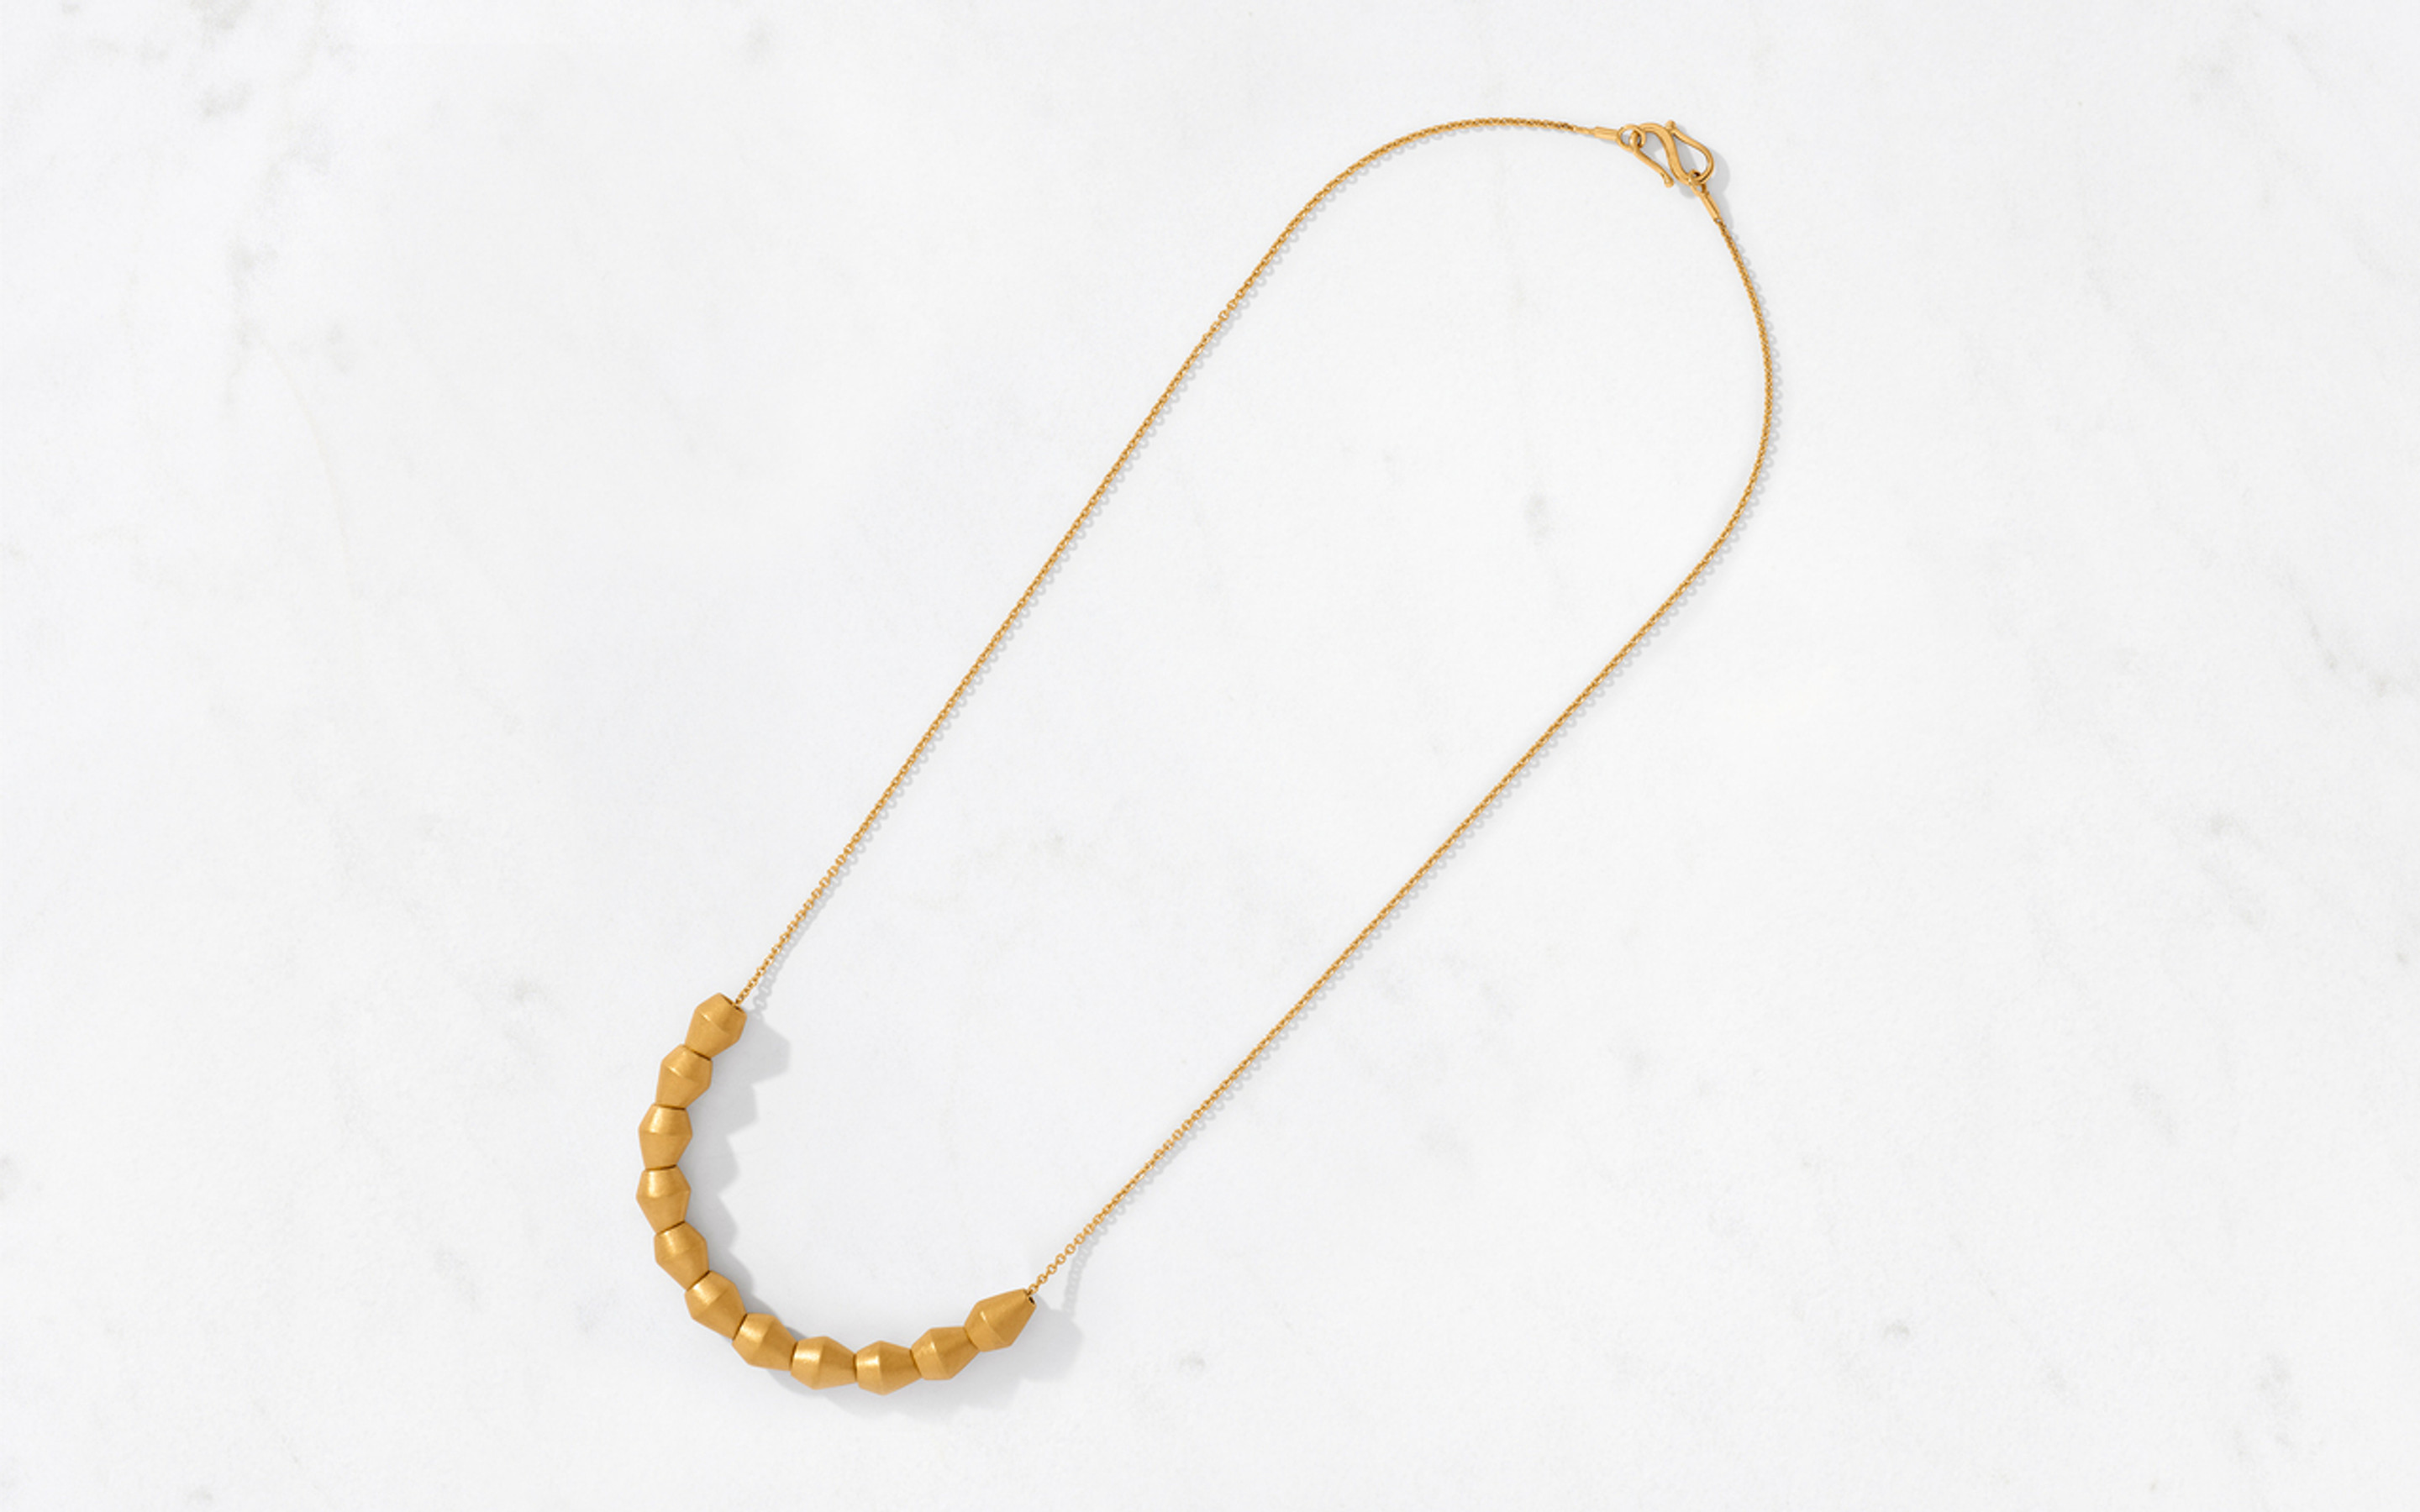 Valo S-11 Necklace